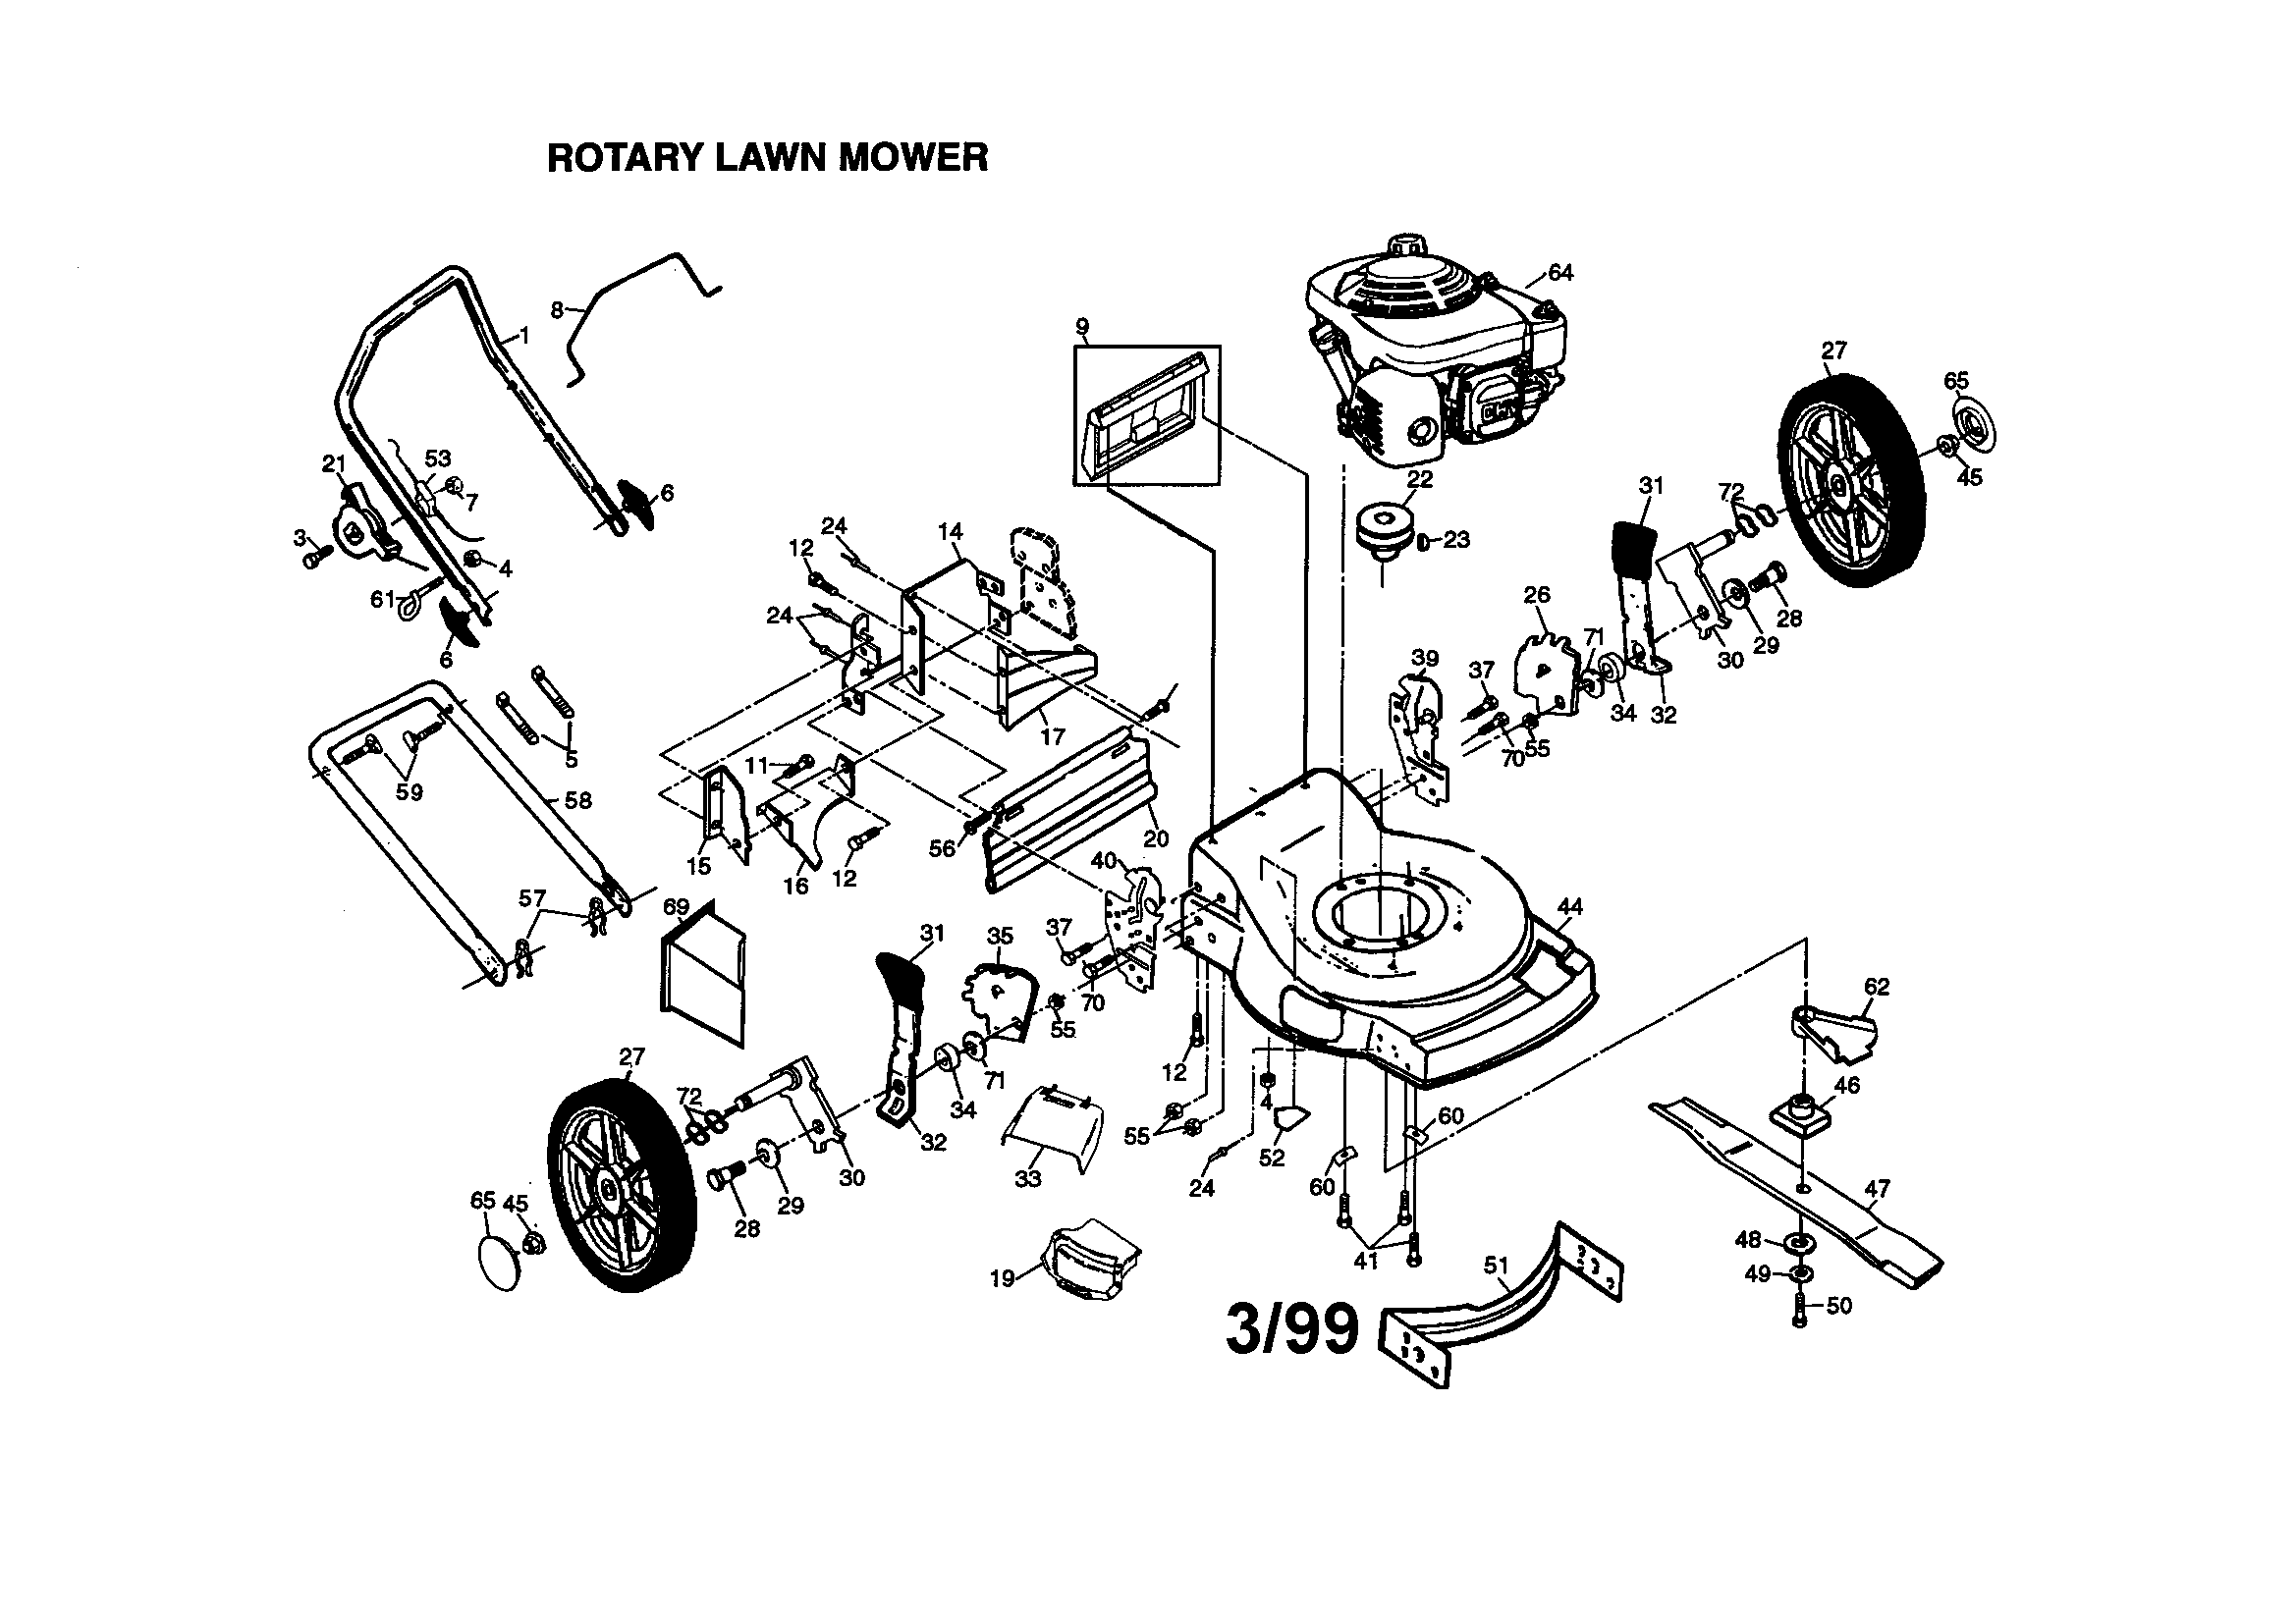 HONDA HRR216 SHOP MANUAL DOWNLOAD HONDA HRR216VKA OWNER 39